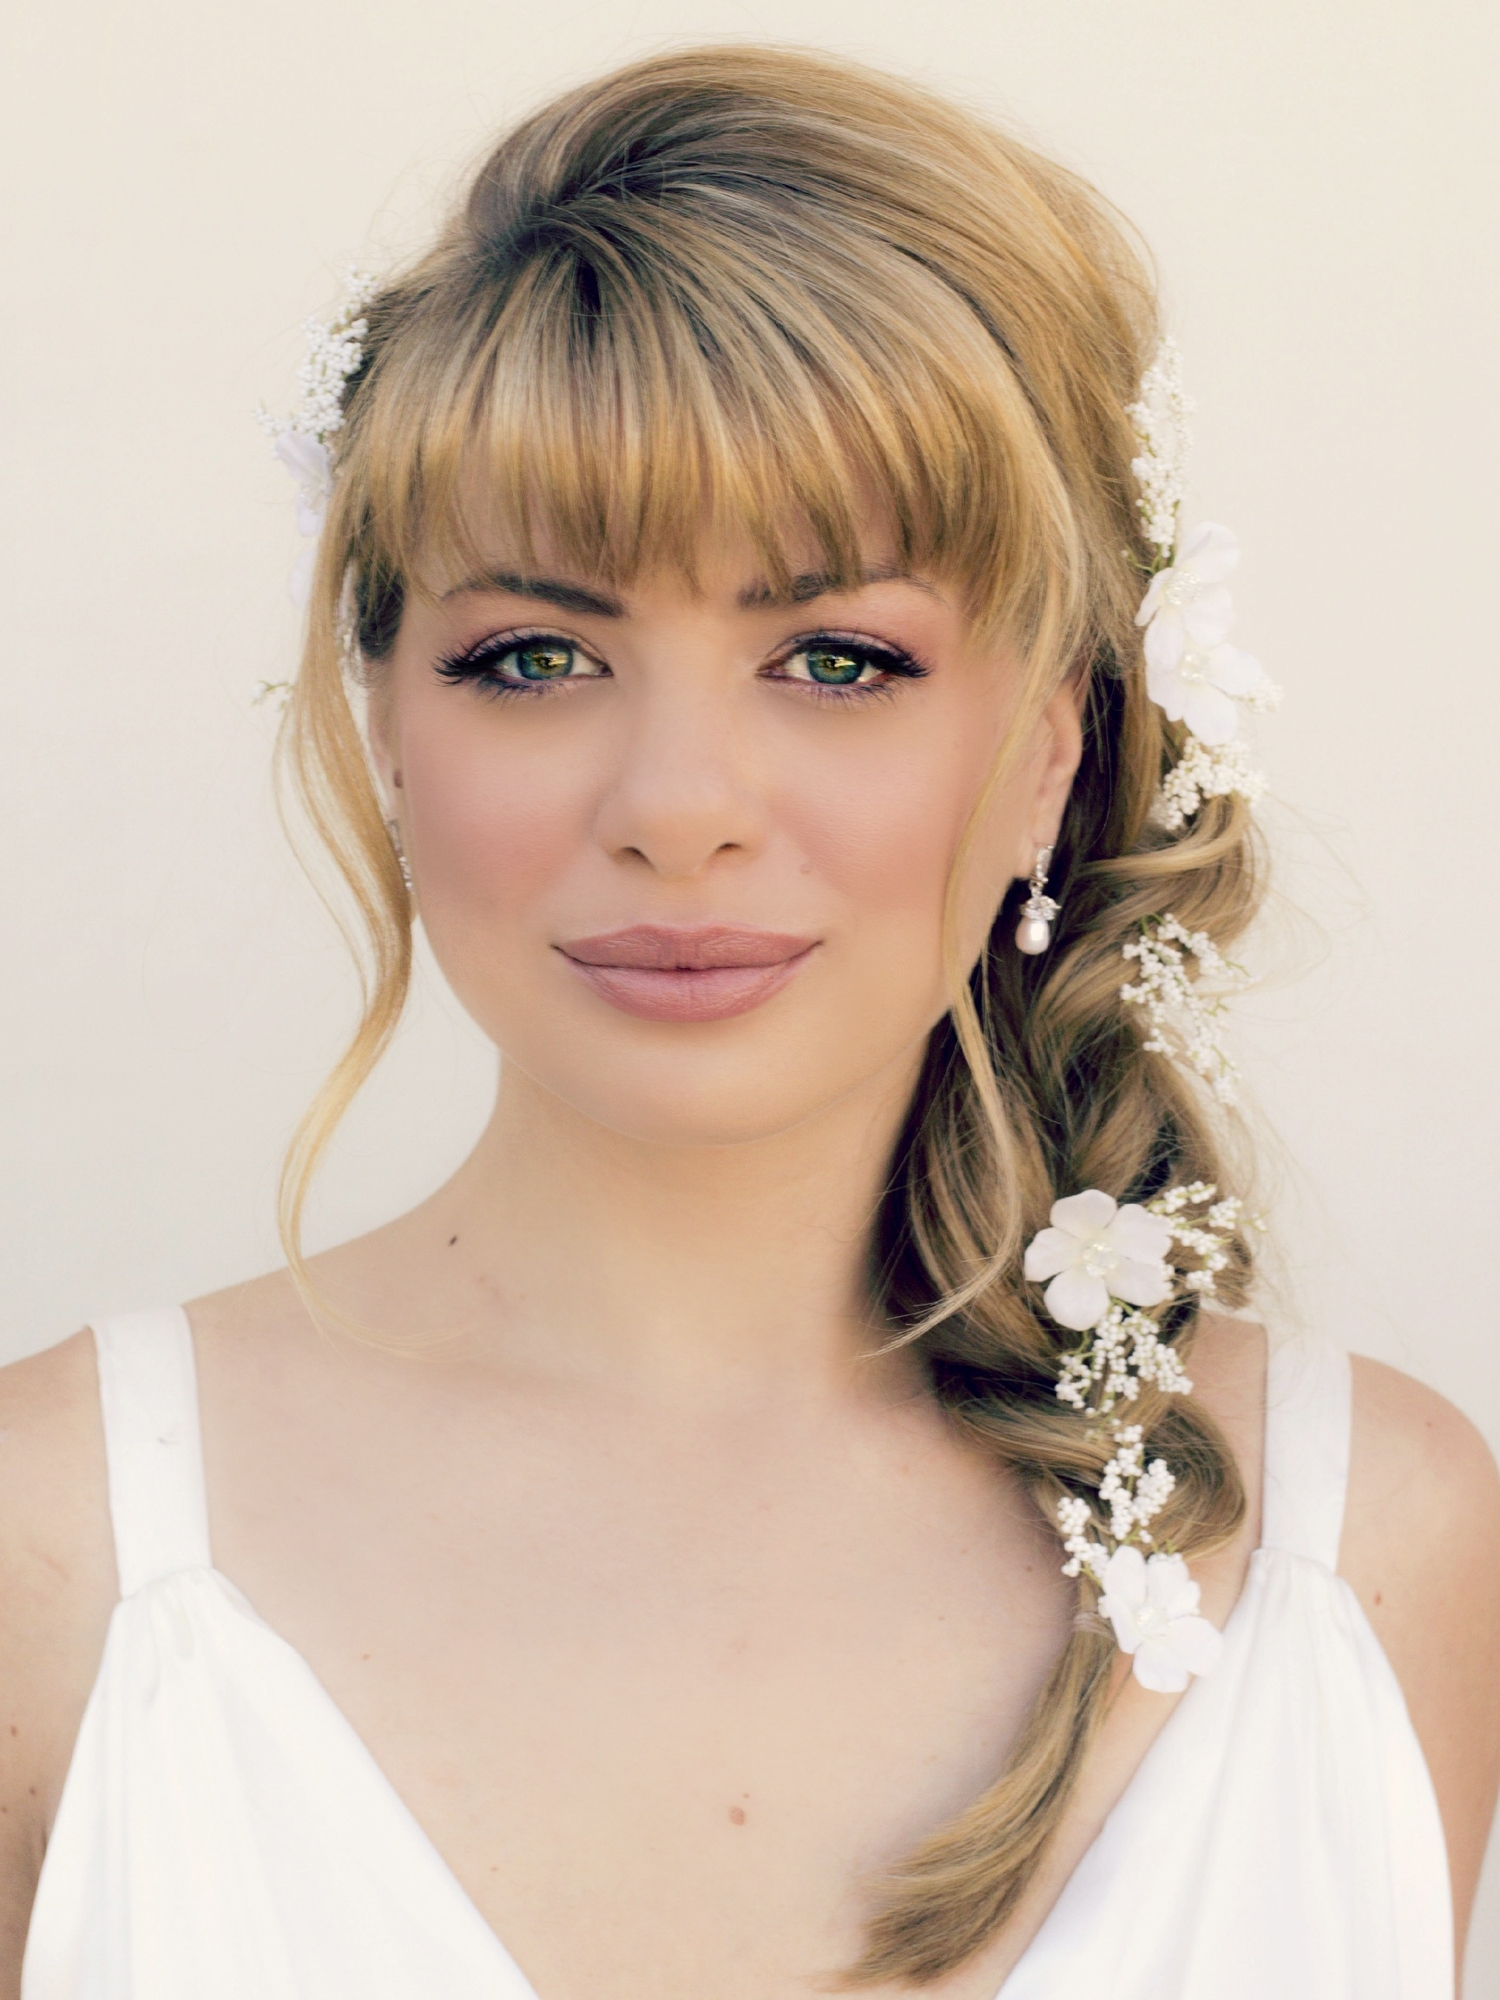 Formidable Wedding Hairstyles For Short Bob Hair Also Best Short Within 2018 Wedding Hairstyles For Short Blonde Hair (View 6 of 15)